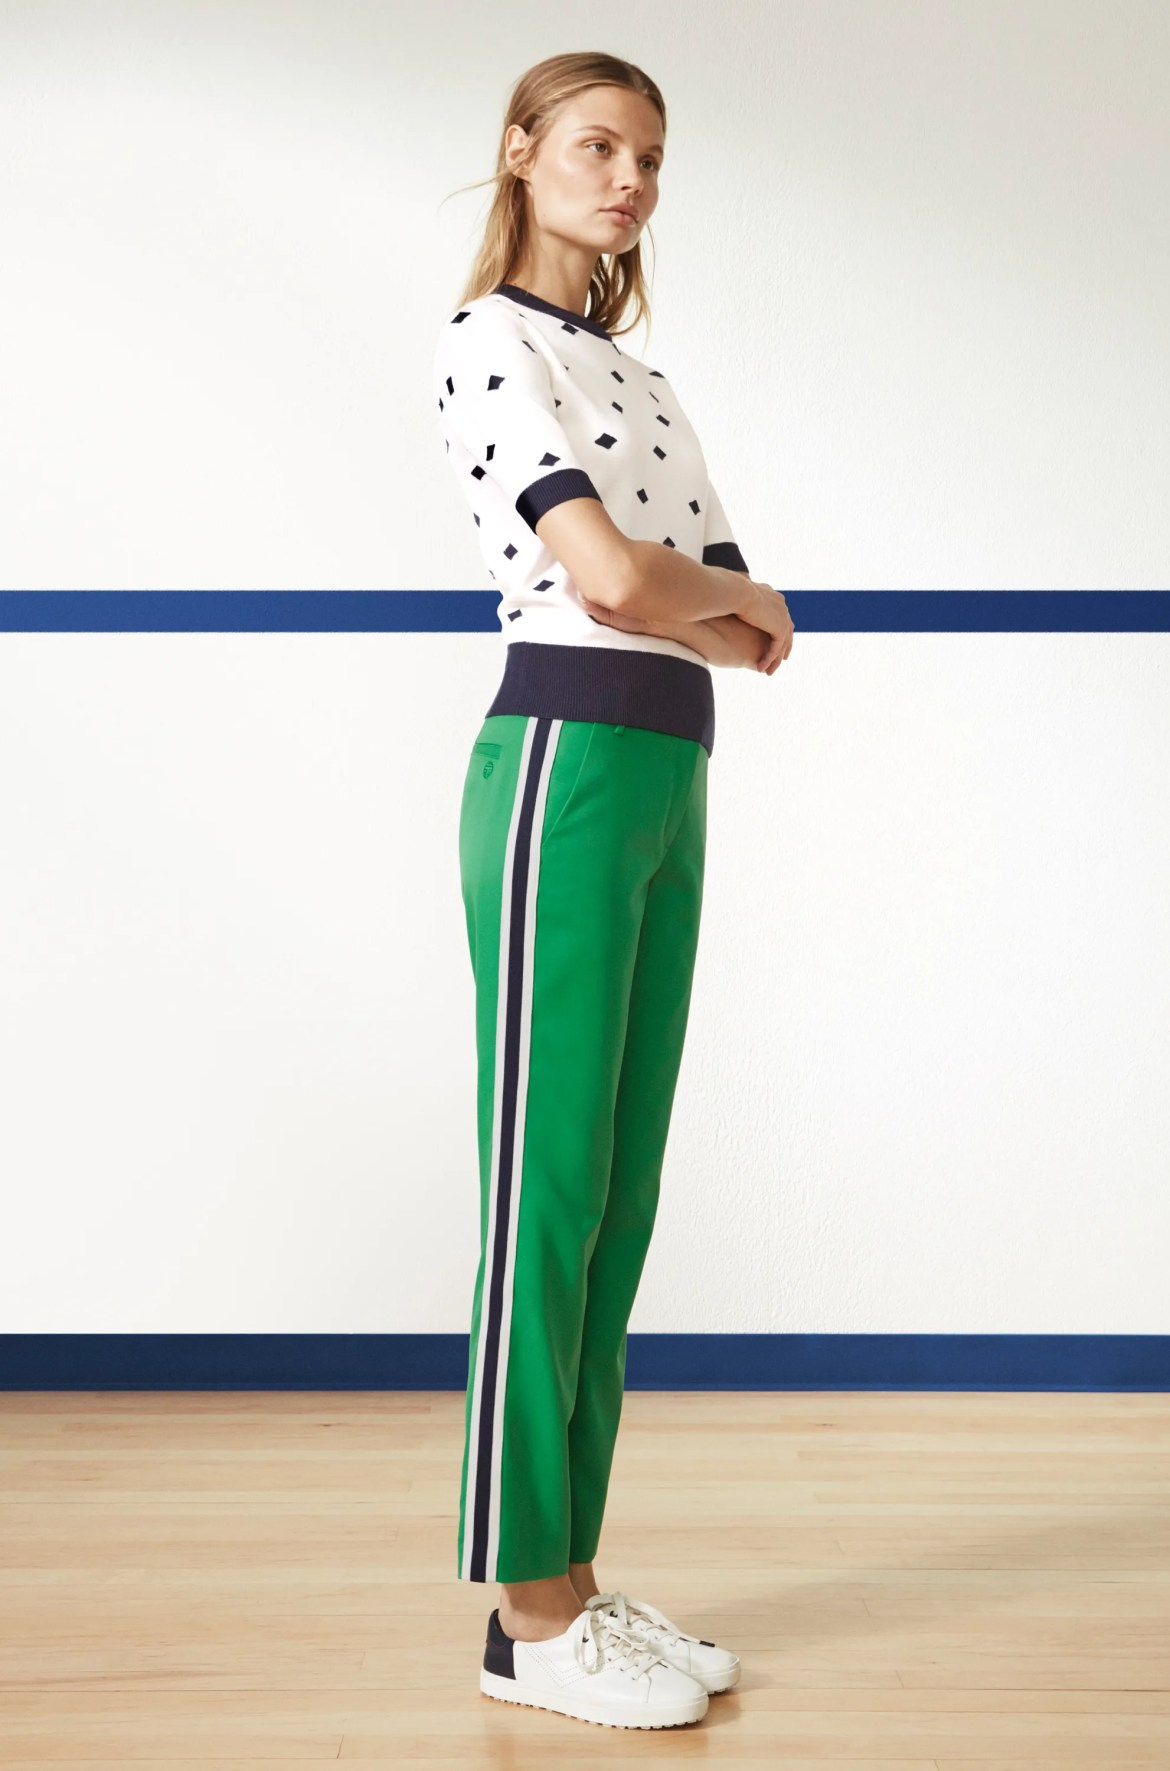 A look from the new Tory Sport collection (Vogue).